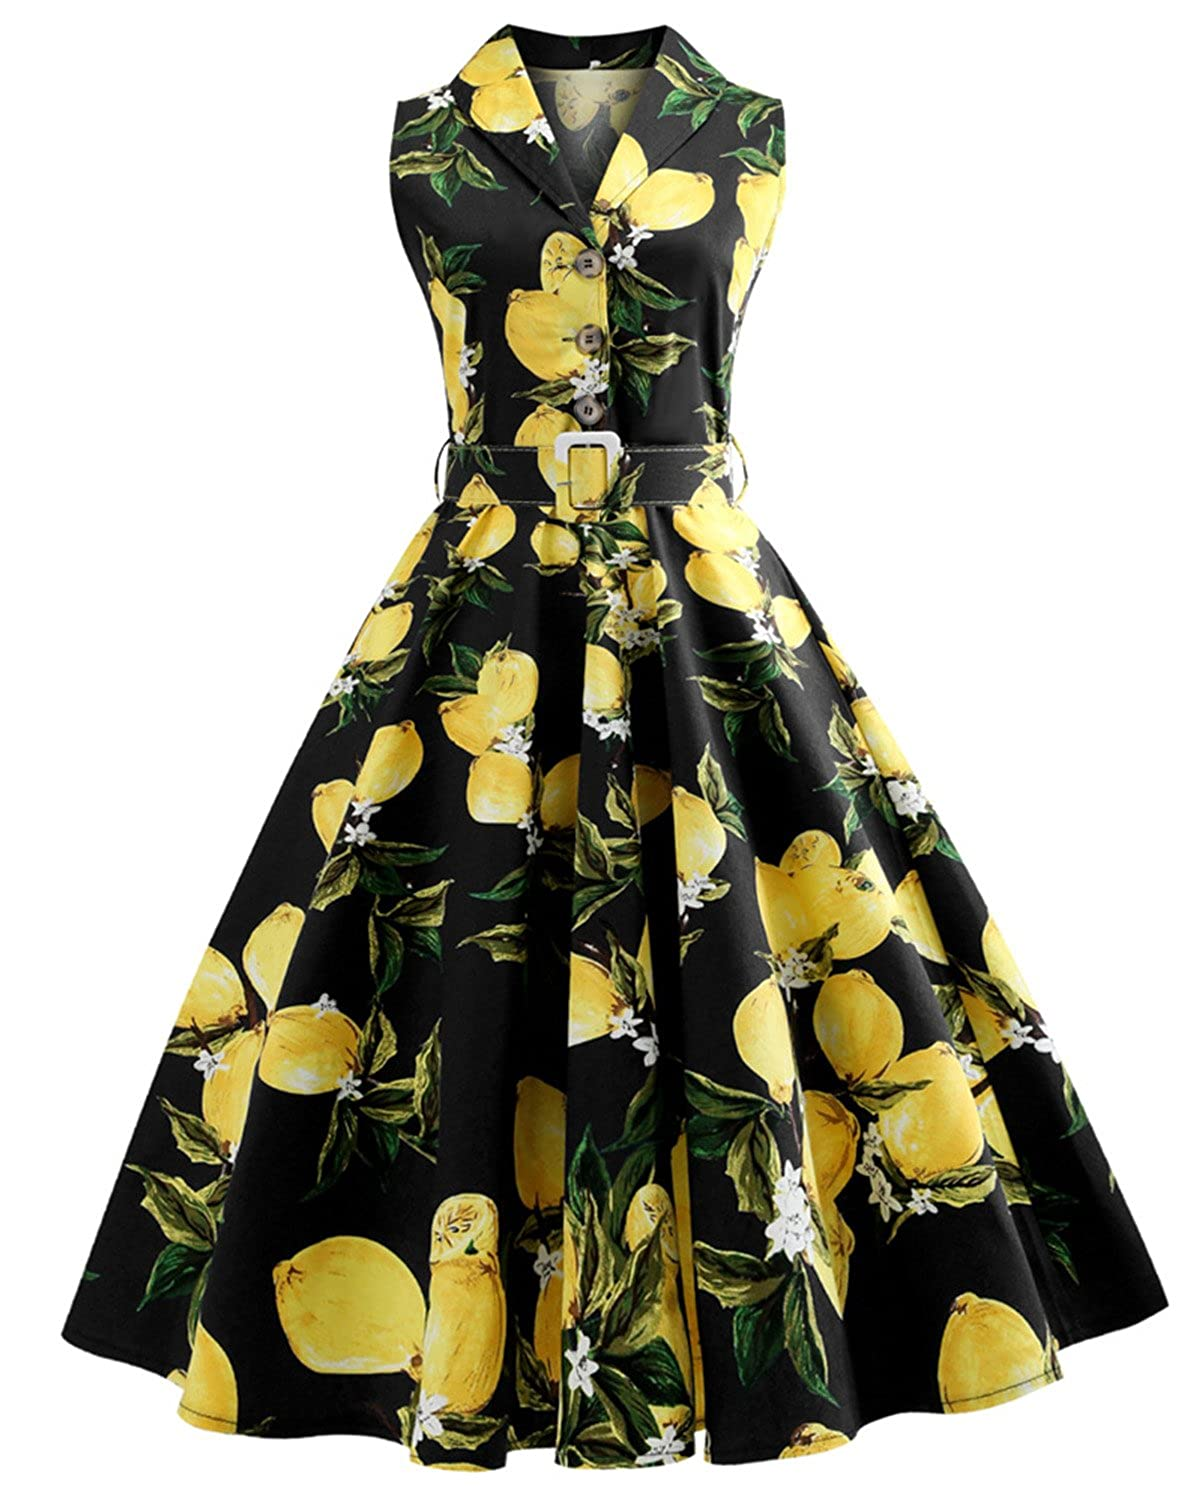 ca7bffc4c28 Top8  ZAFUL Women s Vintage Plus Size 1950s Rockabilly Audrey Lemon Dress  Button Lapel Sleeveless Floral Cocktail Dress with Belt